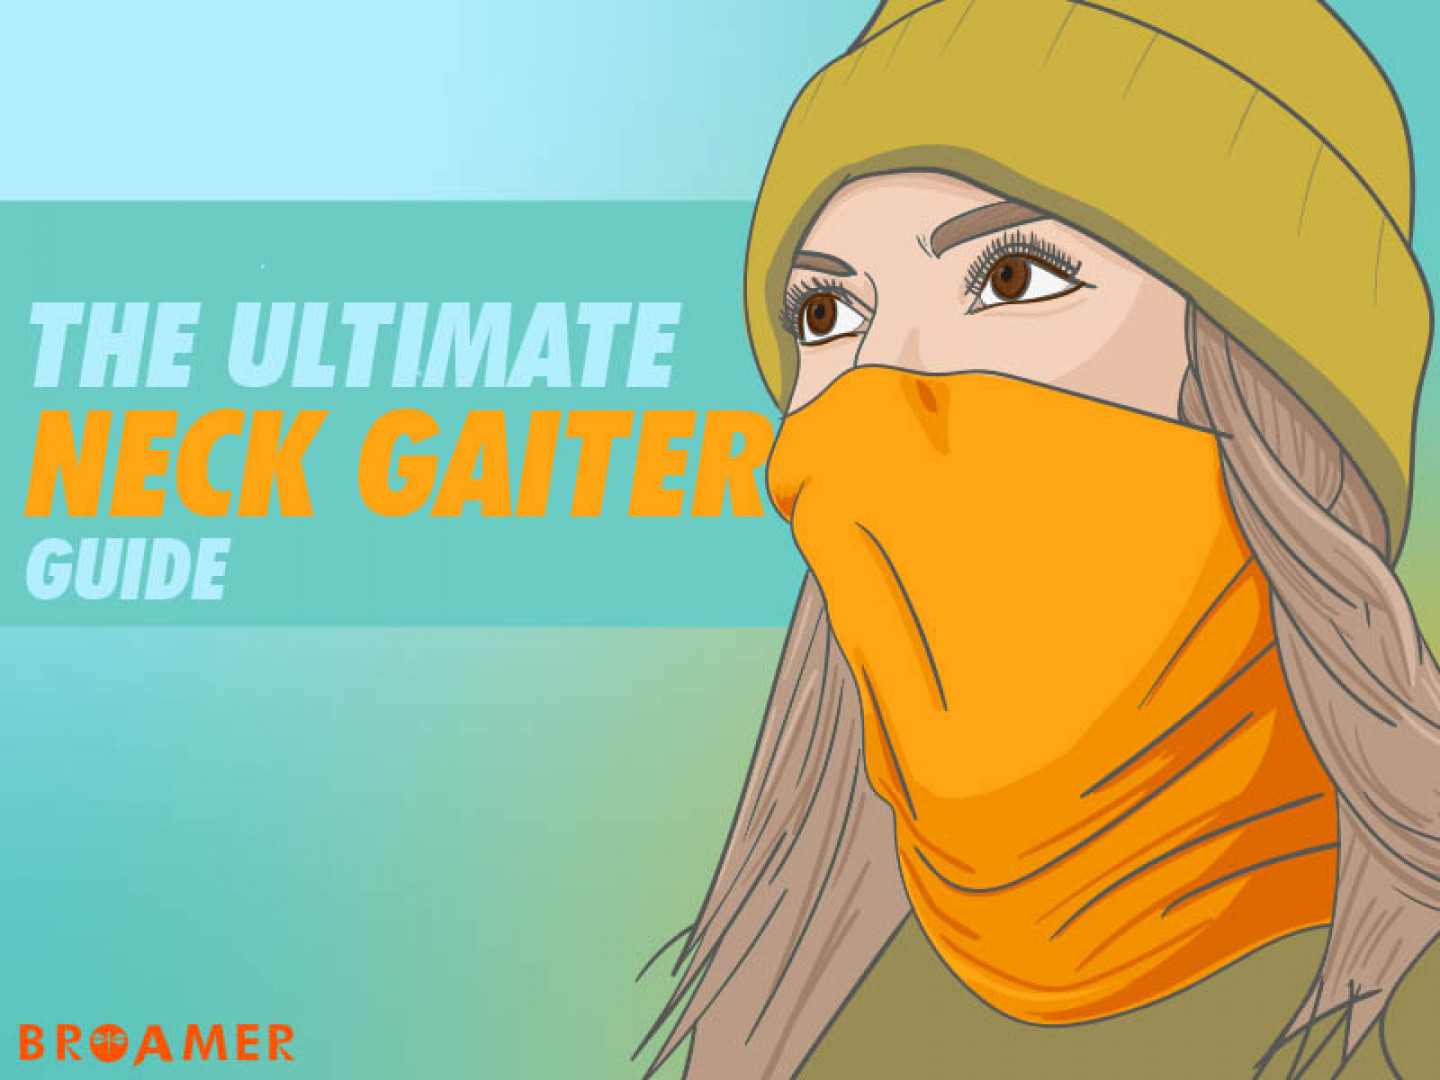 The ultimate neck gaiter guide